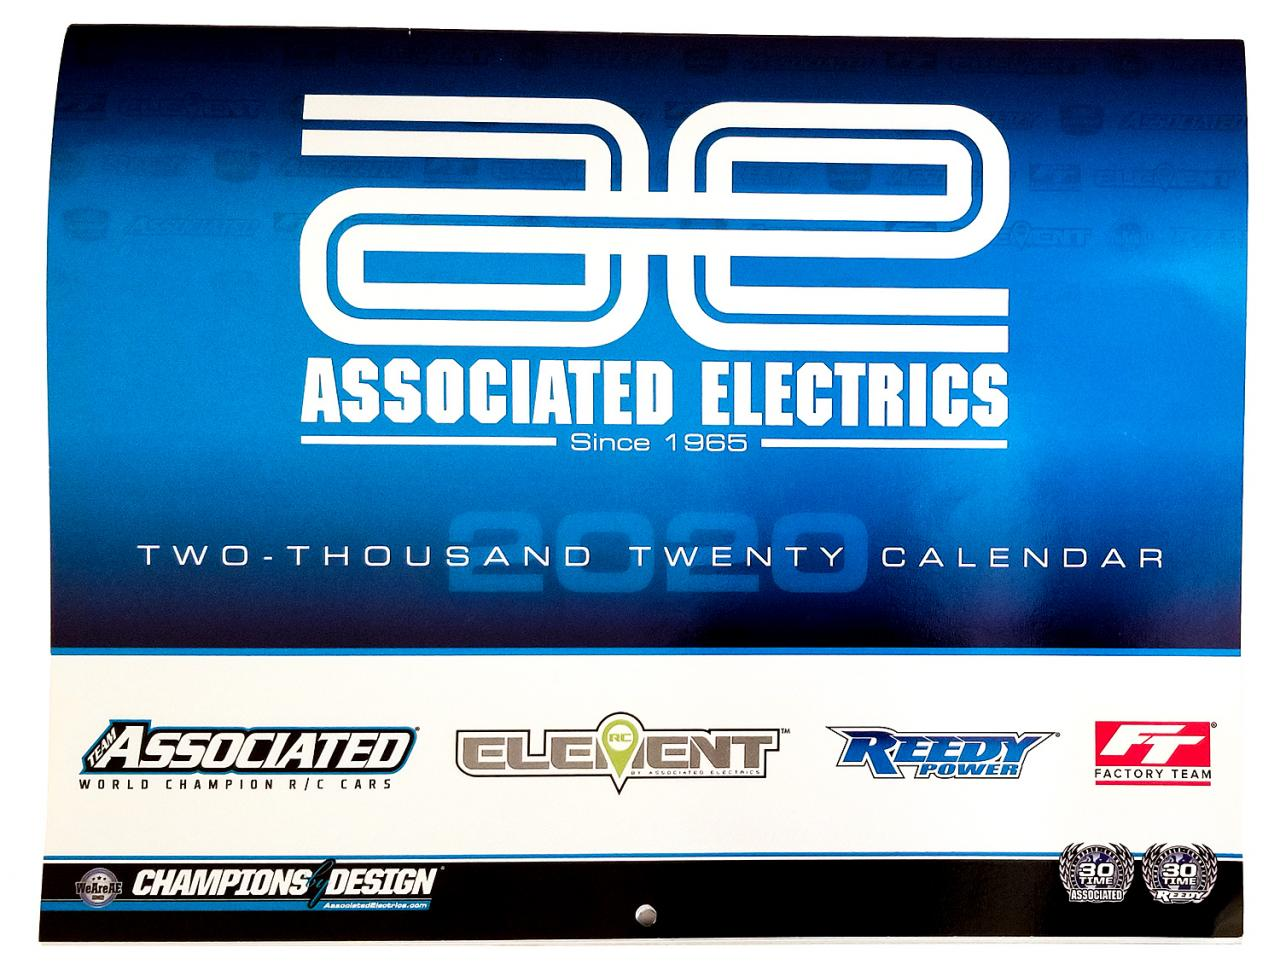 photo of Associated Electrics 2020 Calendar cover